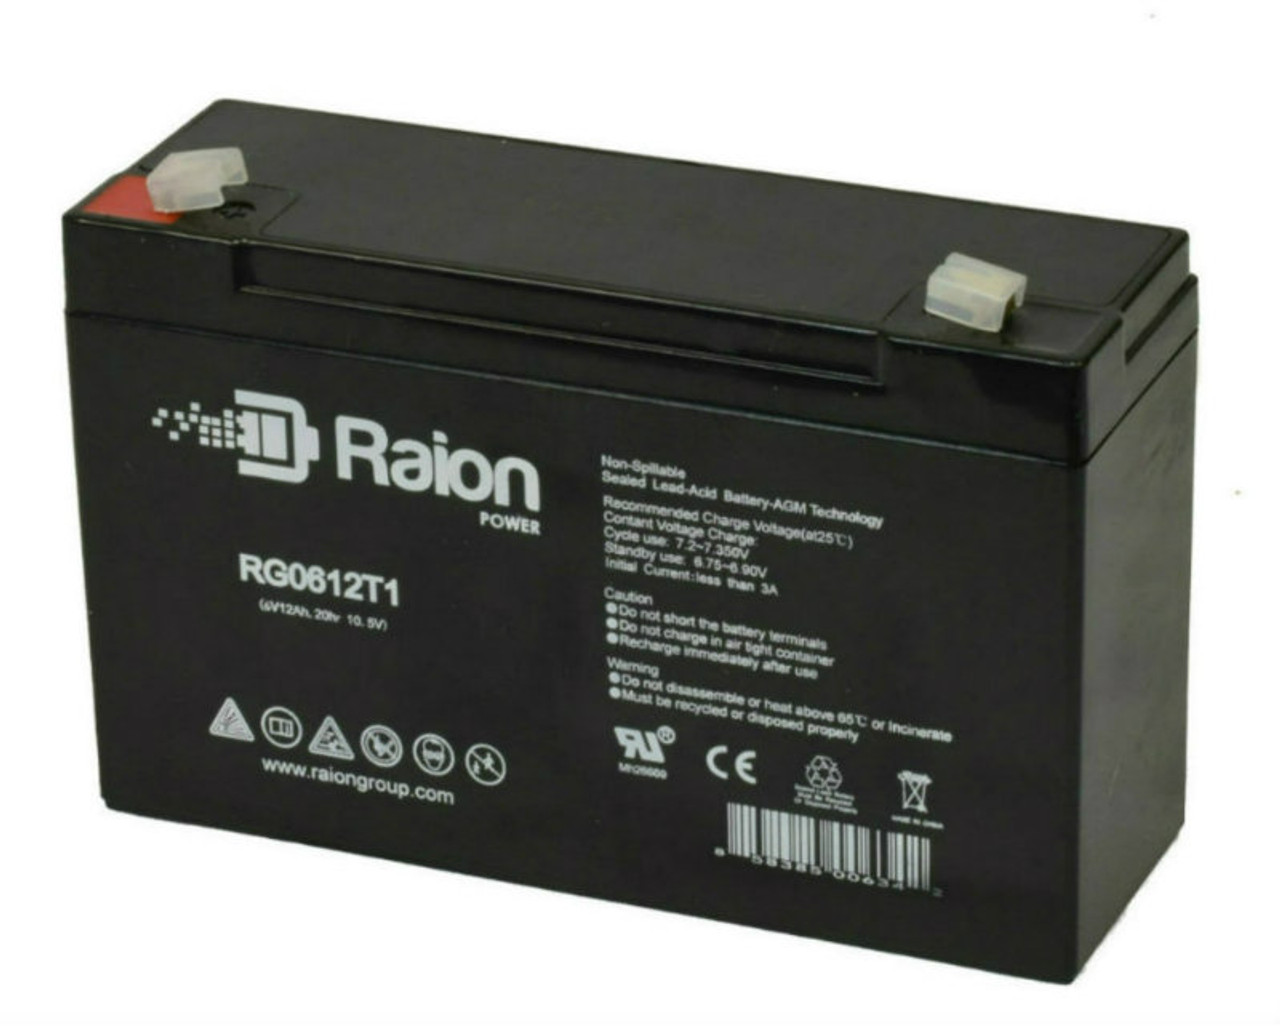 Raion Power RG06120T1 Replacement Battery Pack for Lithonia ELU4N emergency light